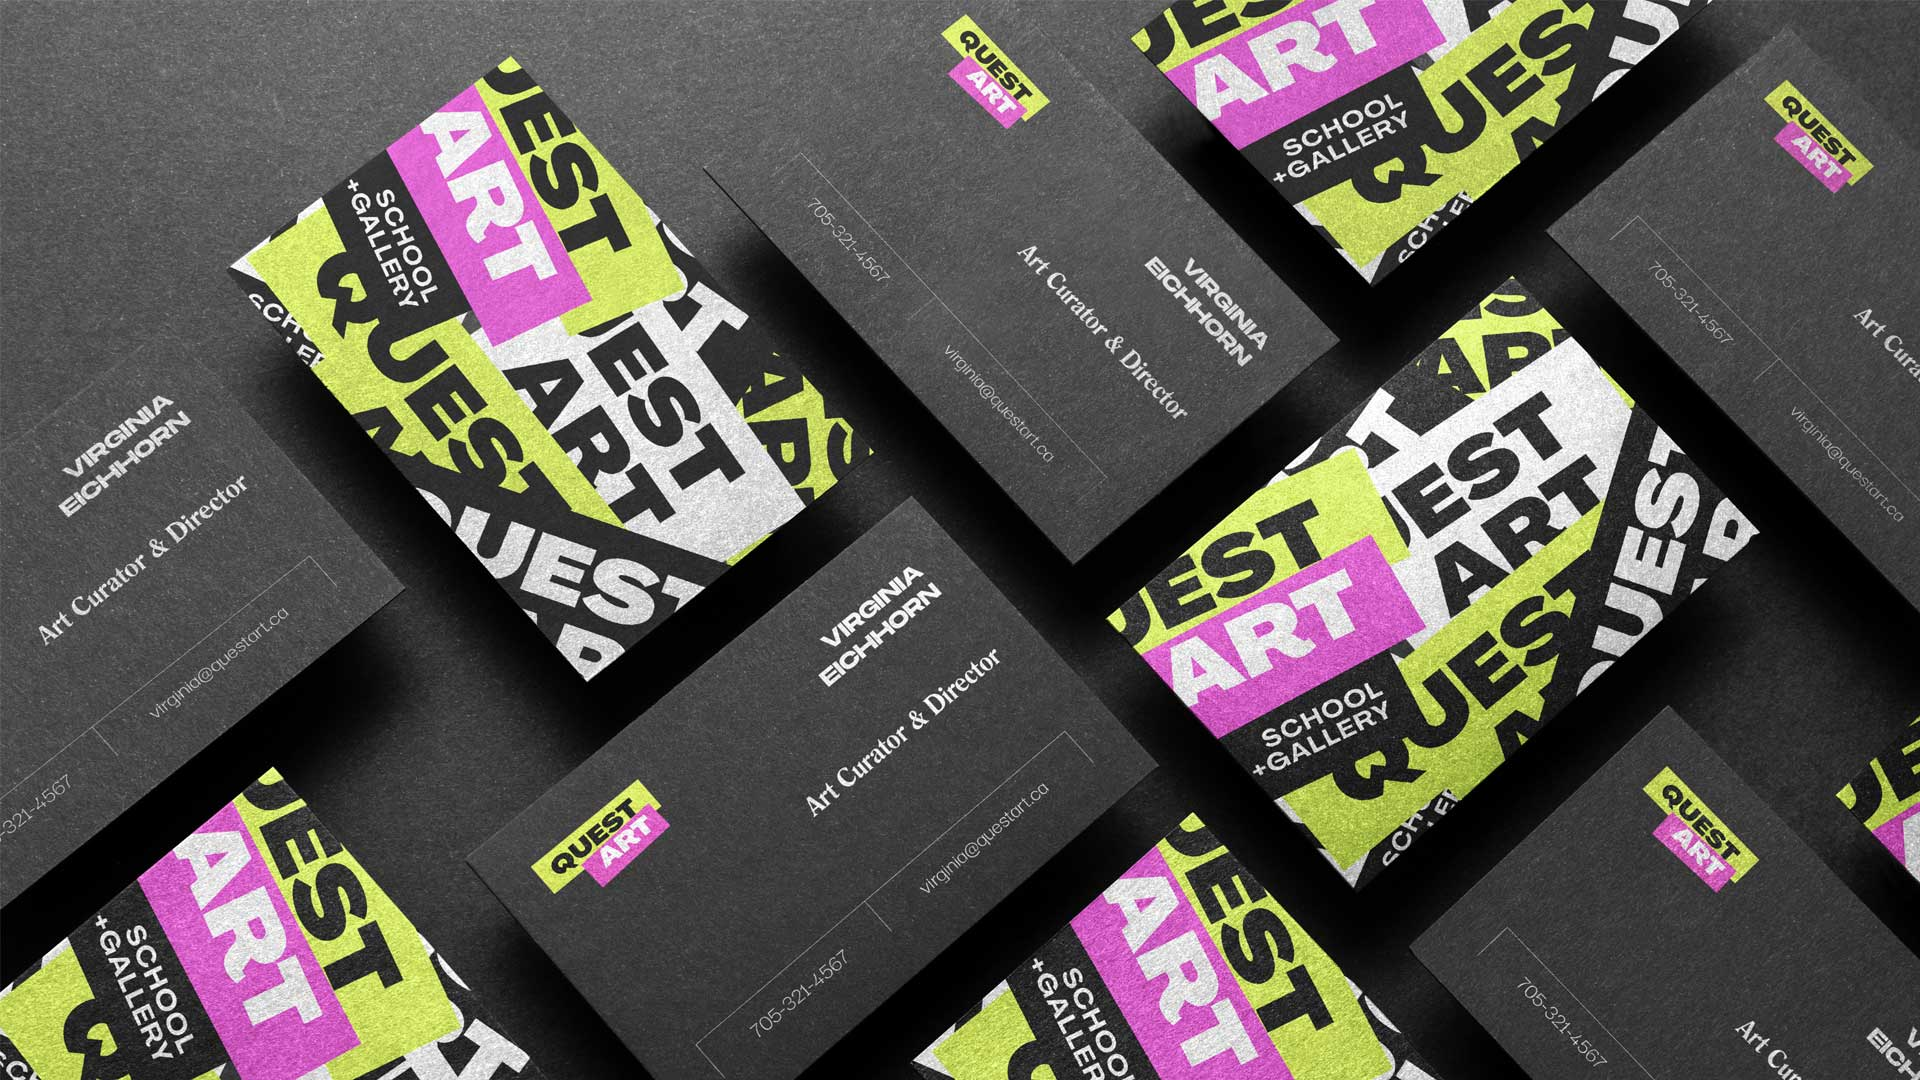 quest art school and gallery business card design